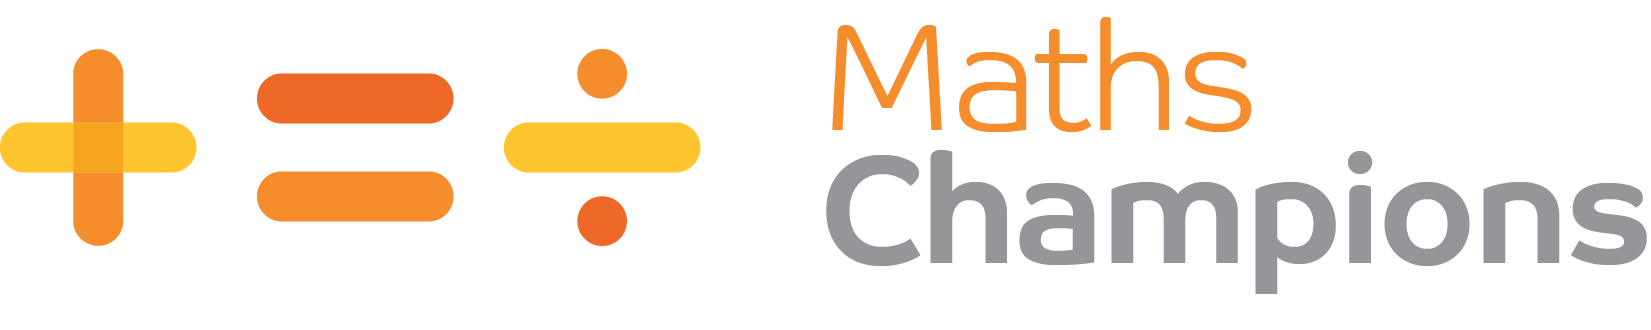 Maths Champions Logo